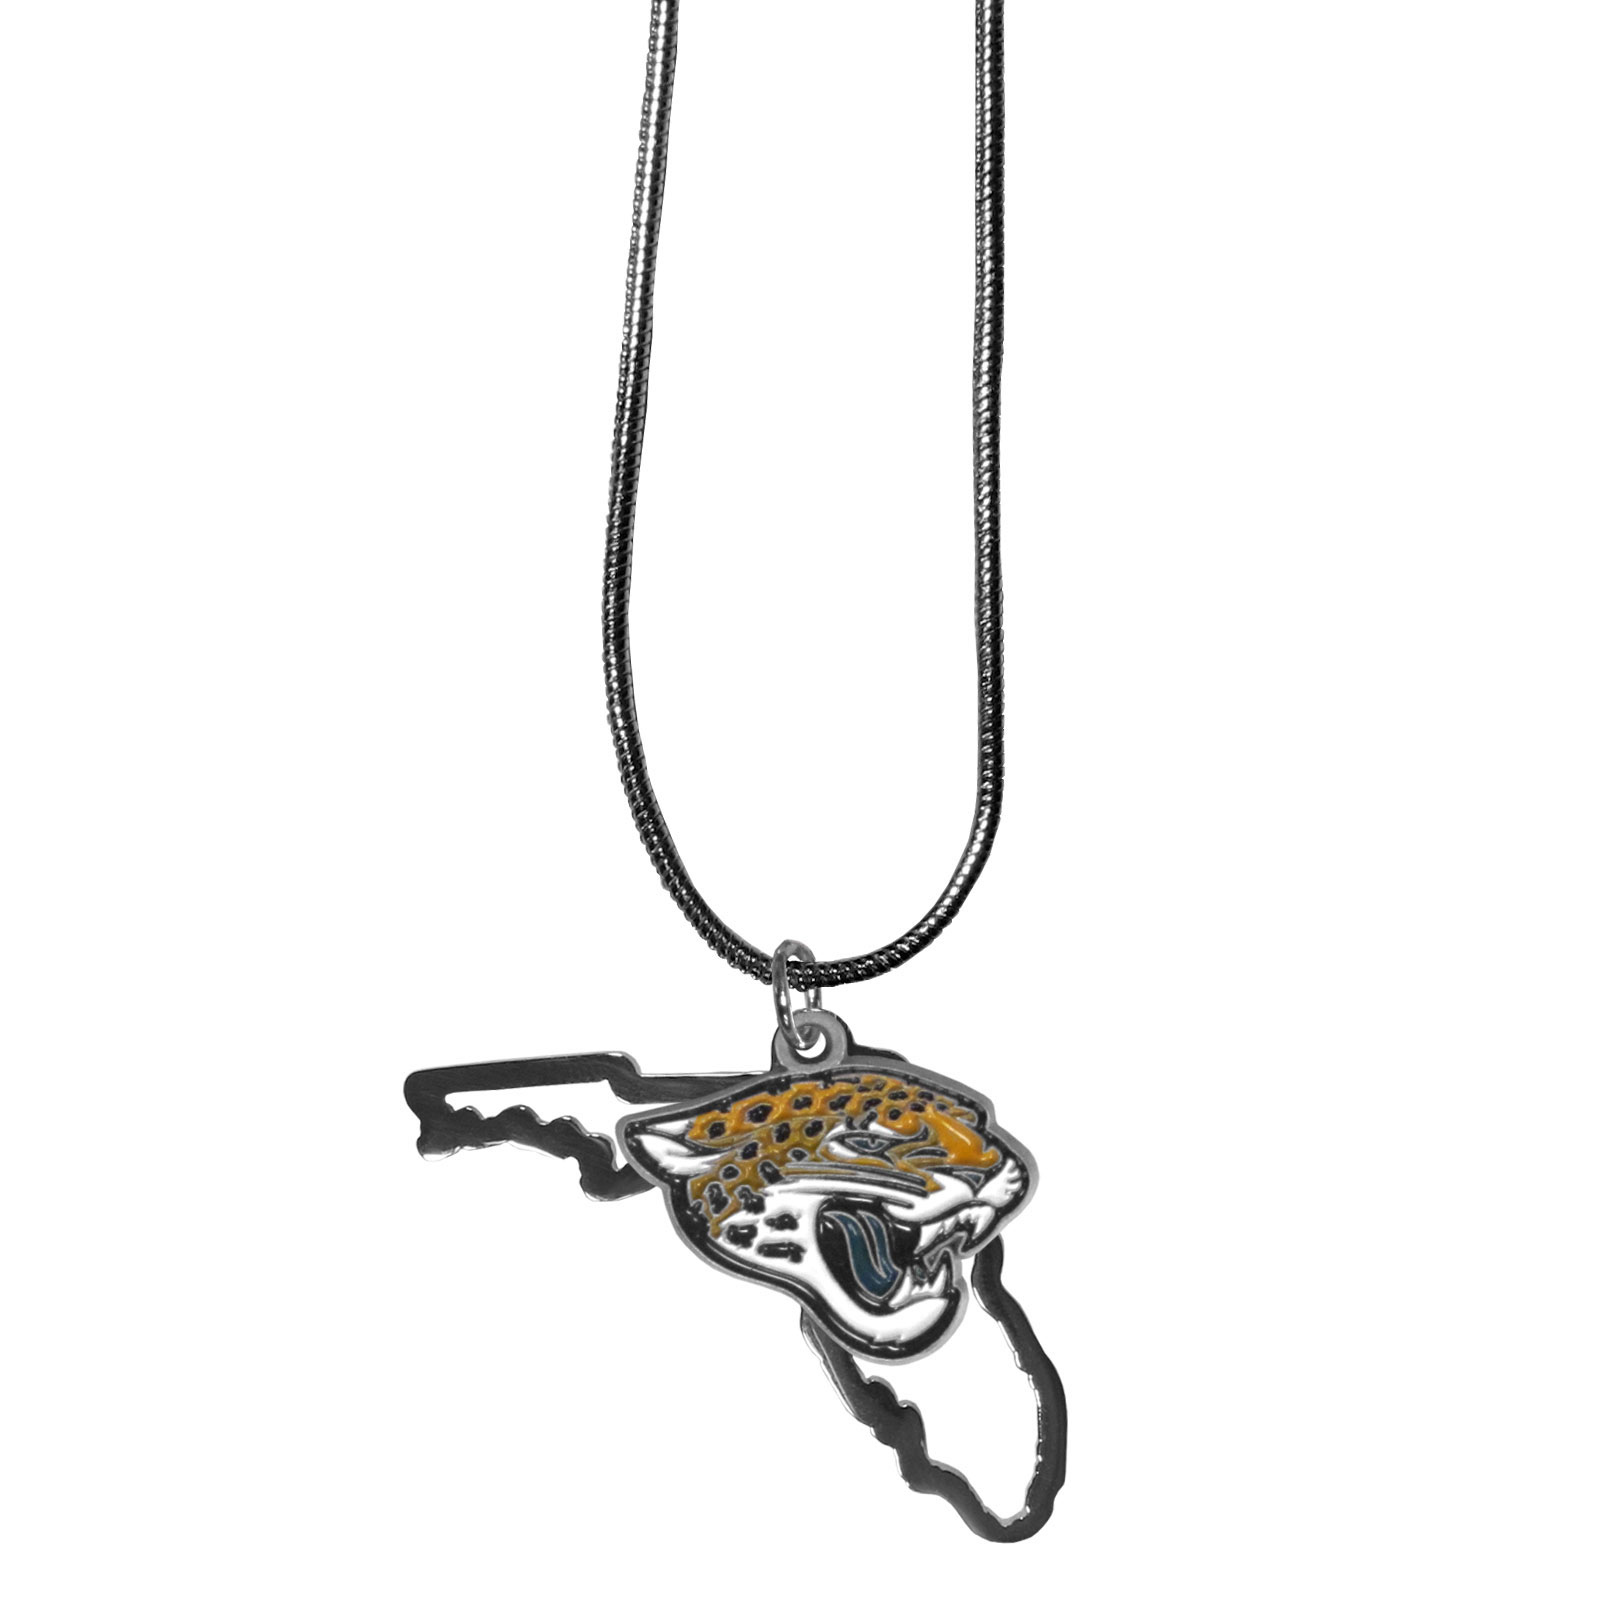 Jacksonville Jaguars State Charm Necklace - Get in on the trend! State themes are a trend that just keeps getting more popular and these necklaces take the state style and give it a sporty twist with a Jacksonville Jaguars added to the state outline charm. The come on a snake chain that is 22 inches long.